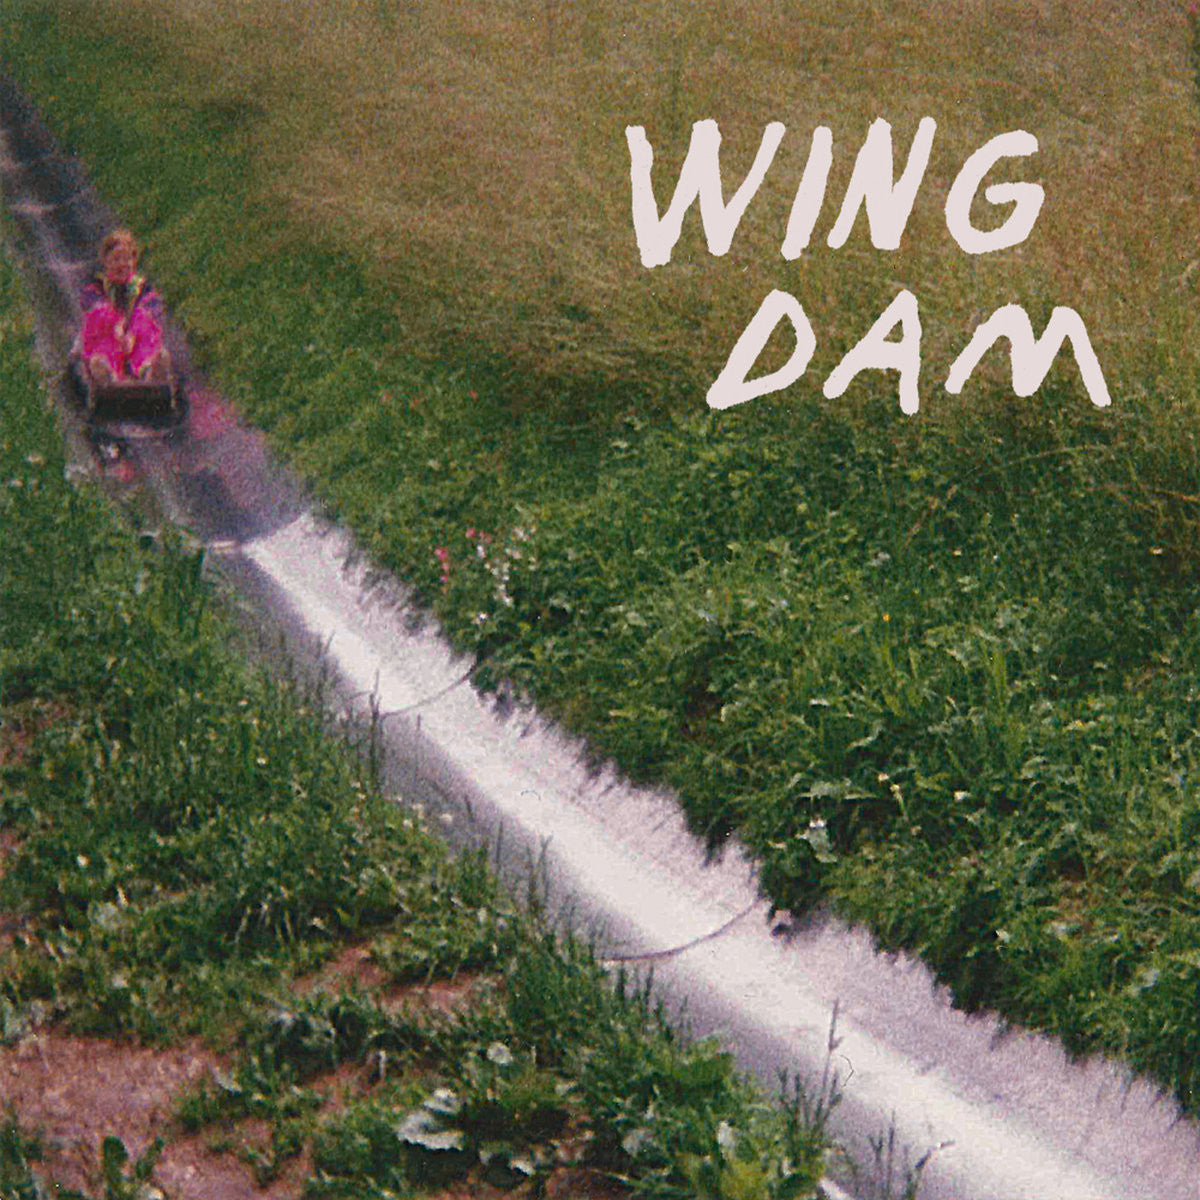 Wing Dam - Glow Ahead - New Vinyl Record 2016 Friends Records LP - Fuzz Pop / Indie Rock